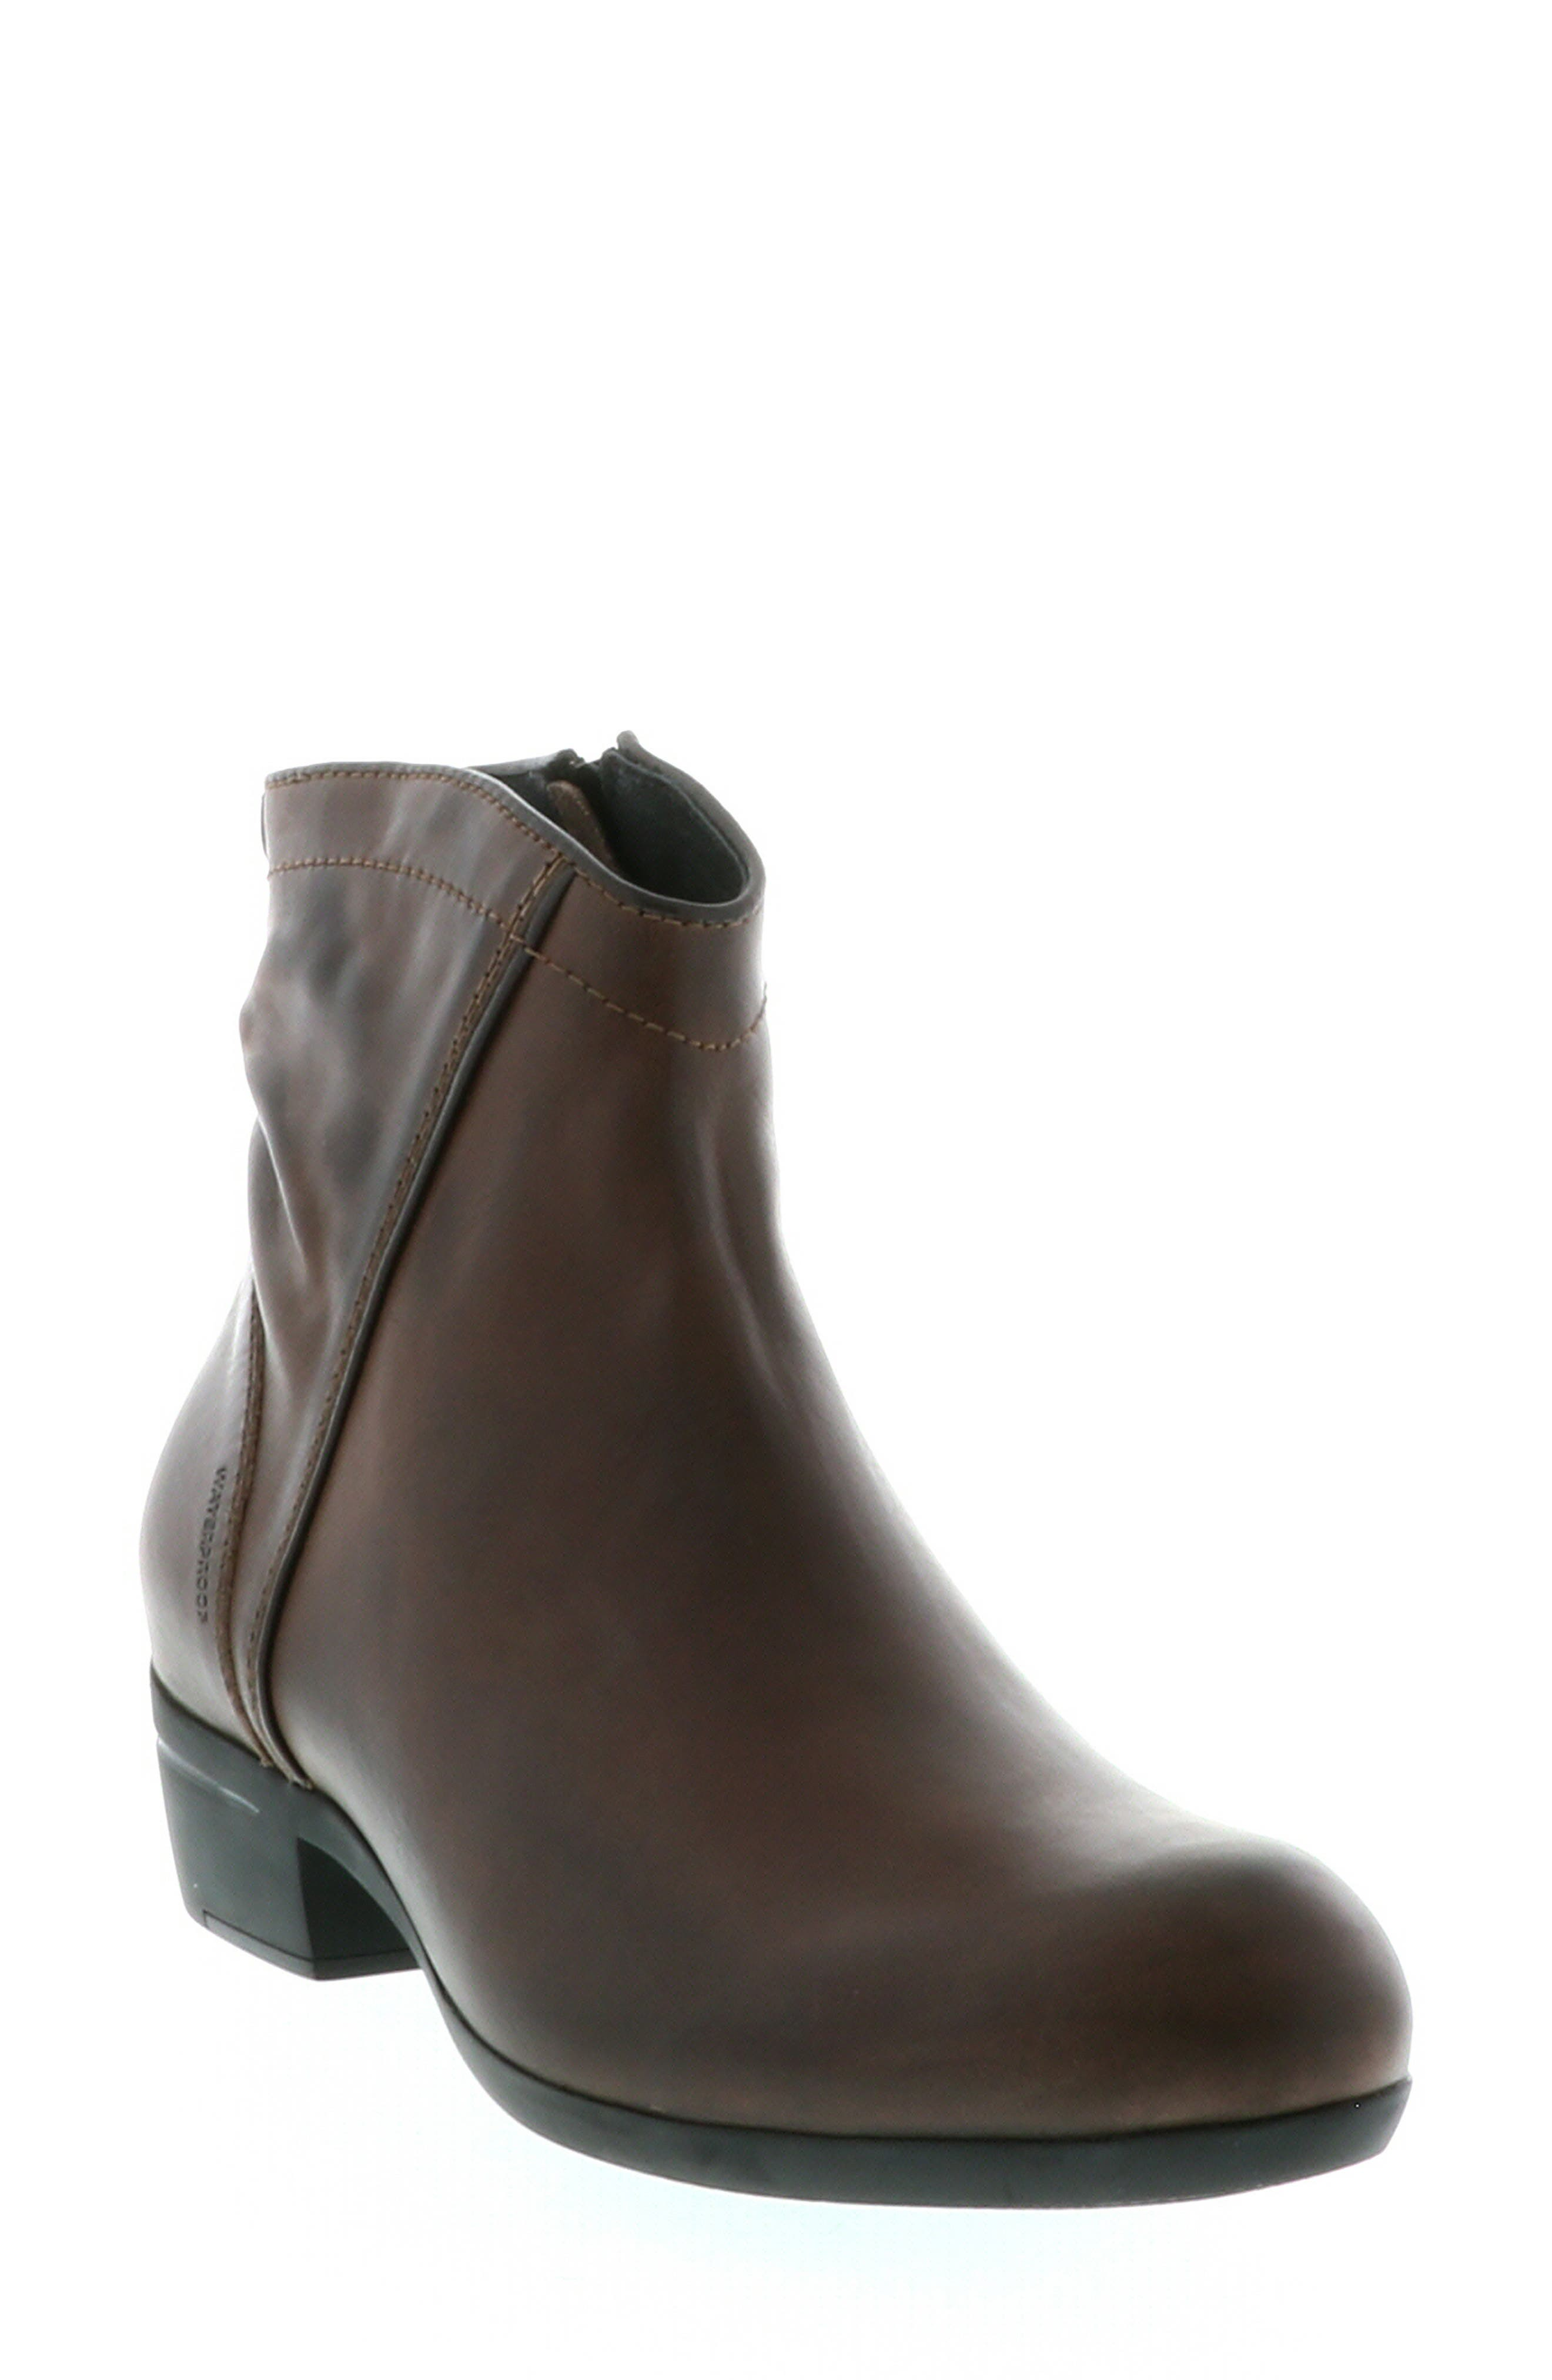 7076a0596b8 Women s Grey Booties   Ankle Boots